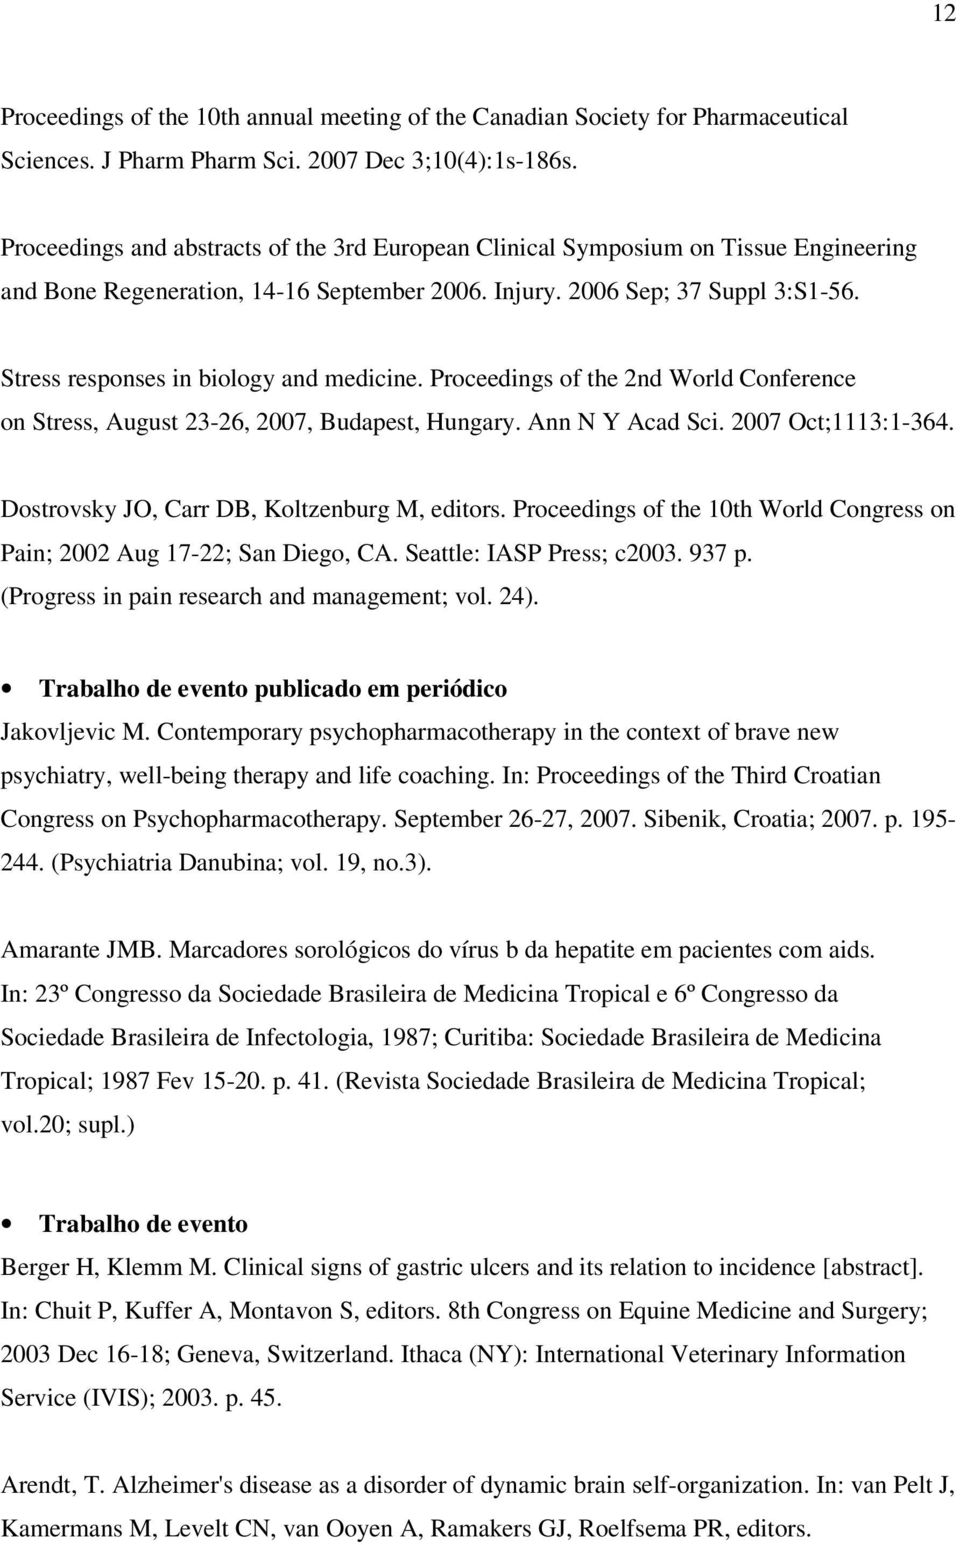 Stress responses in biology and medicine. Proceedings of the 2nd World Conference on Stress, August 23-26, 2007, Budapest, Hungary. Ann N Y Acad Sci. 2007 Oct;1113:1-364.